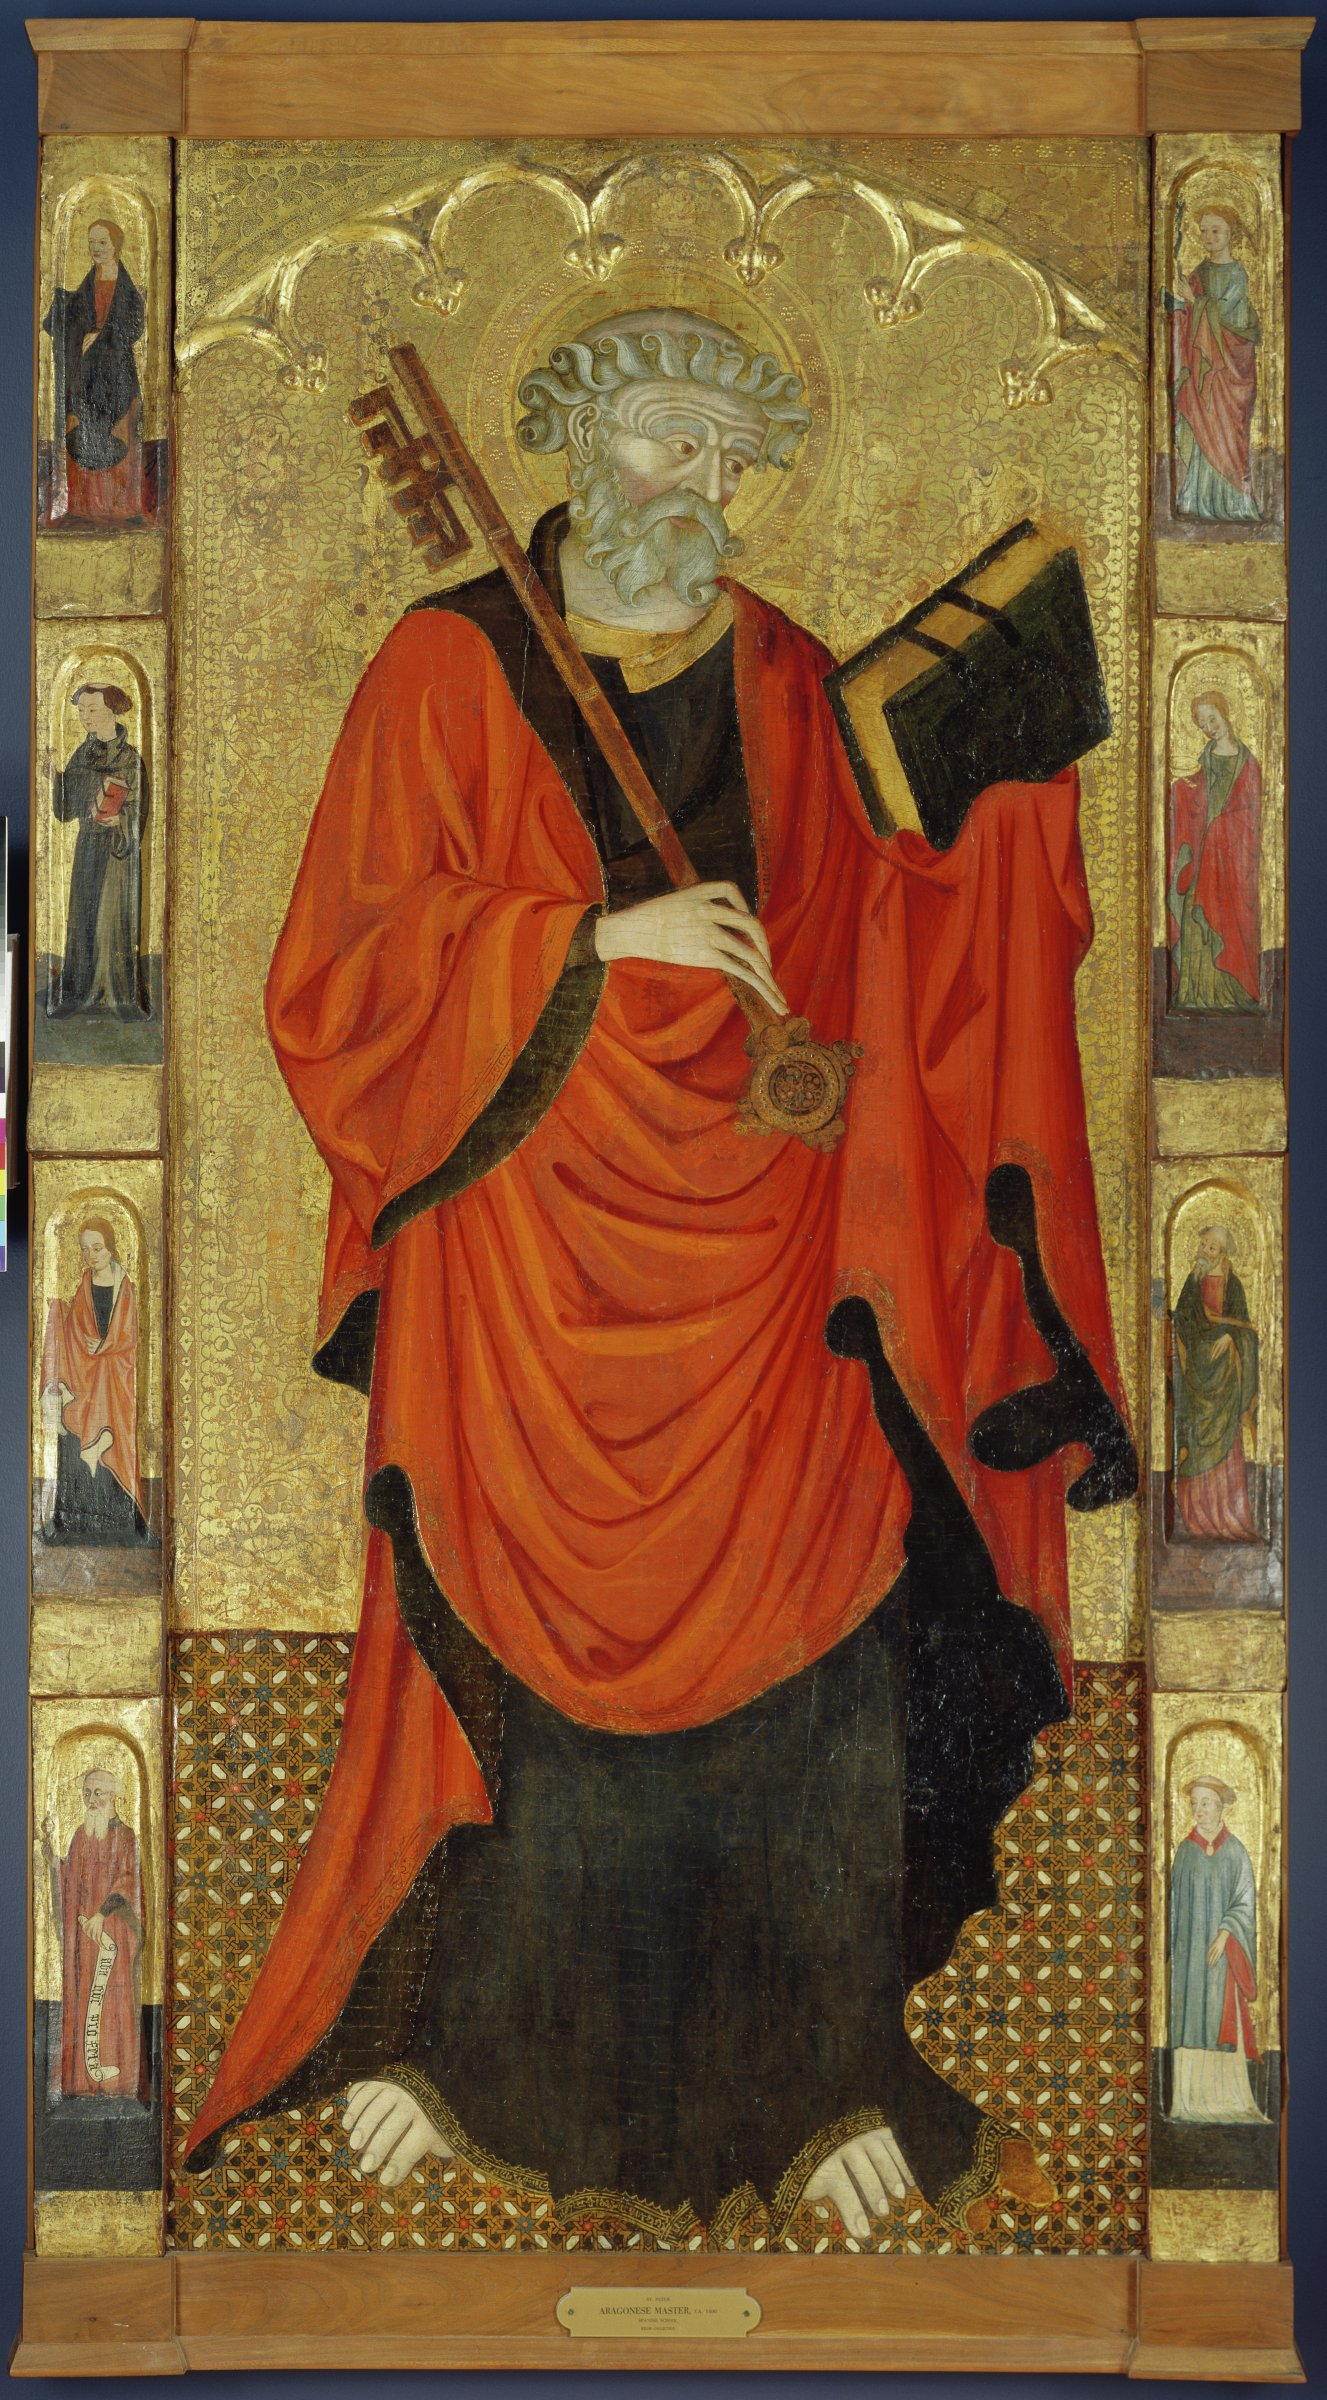 Saint Peter stands in the center of the panel, holding a large key and book. He is framed on the right and left by saints depicted in miniature.